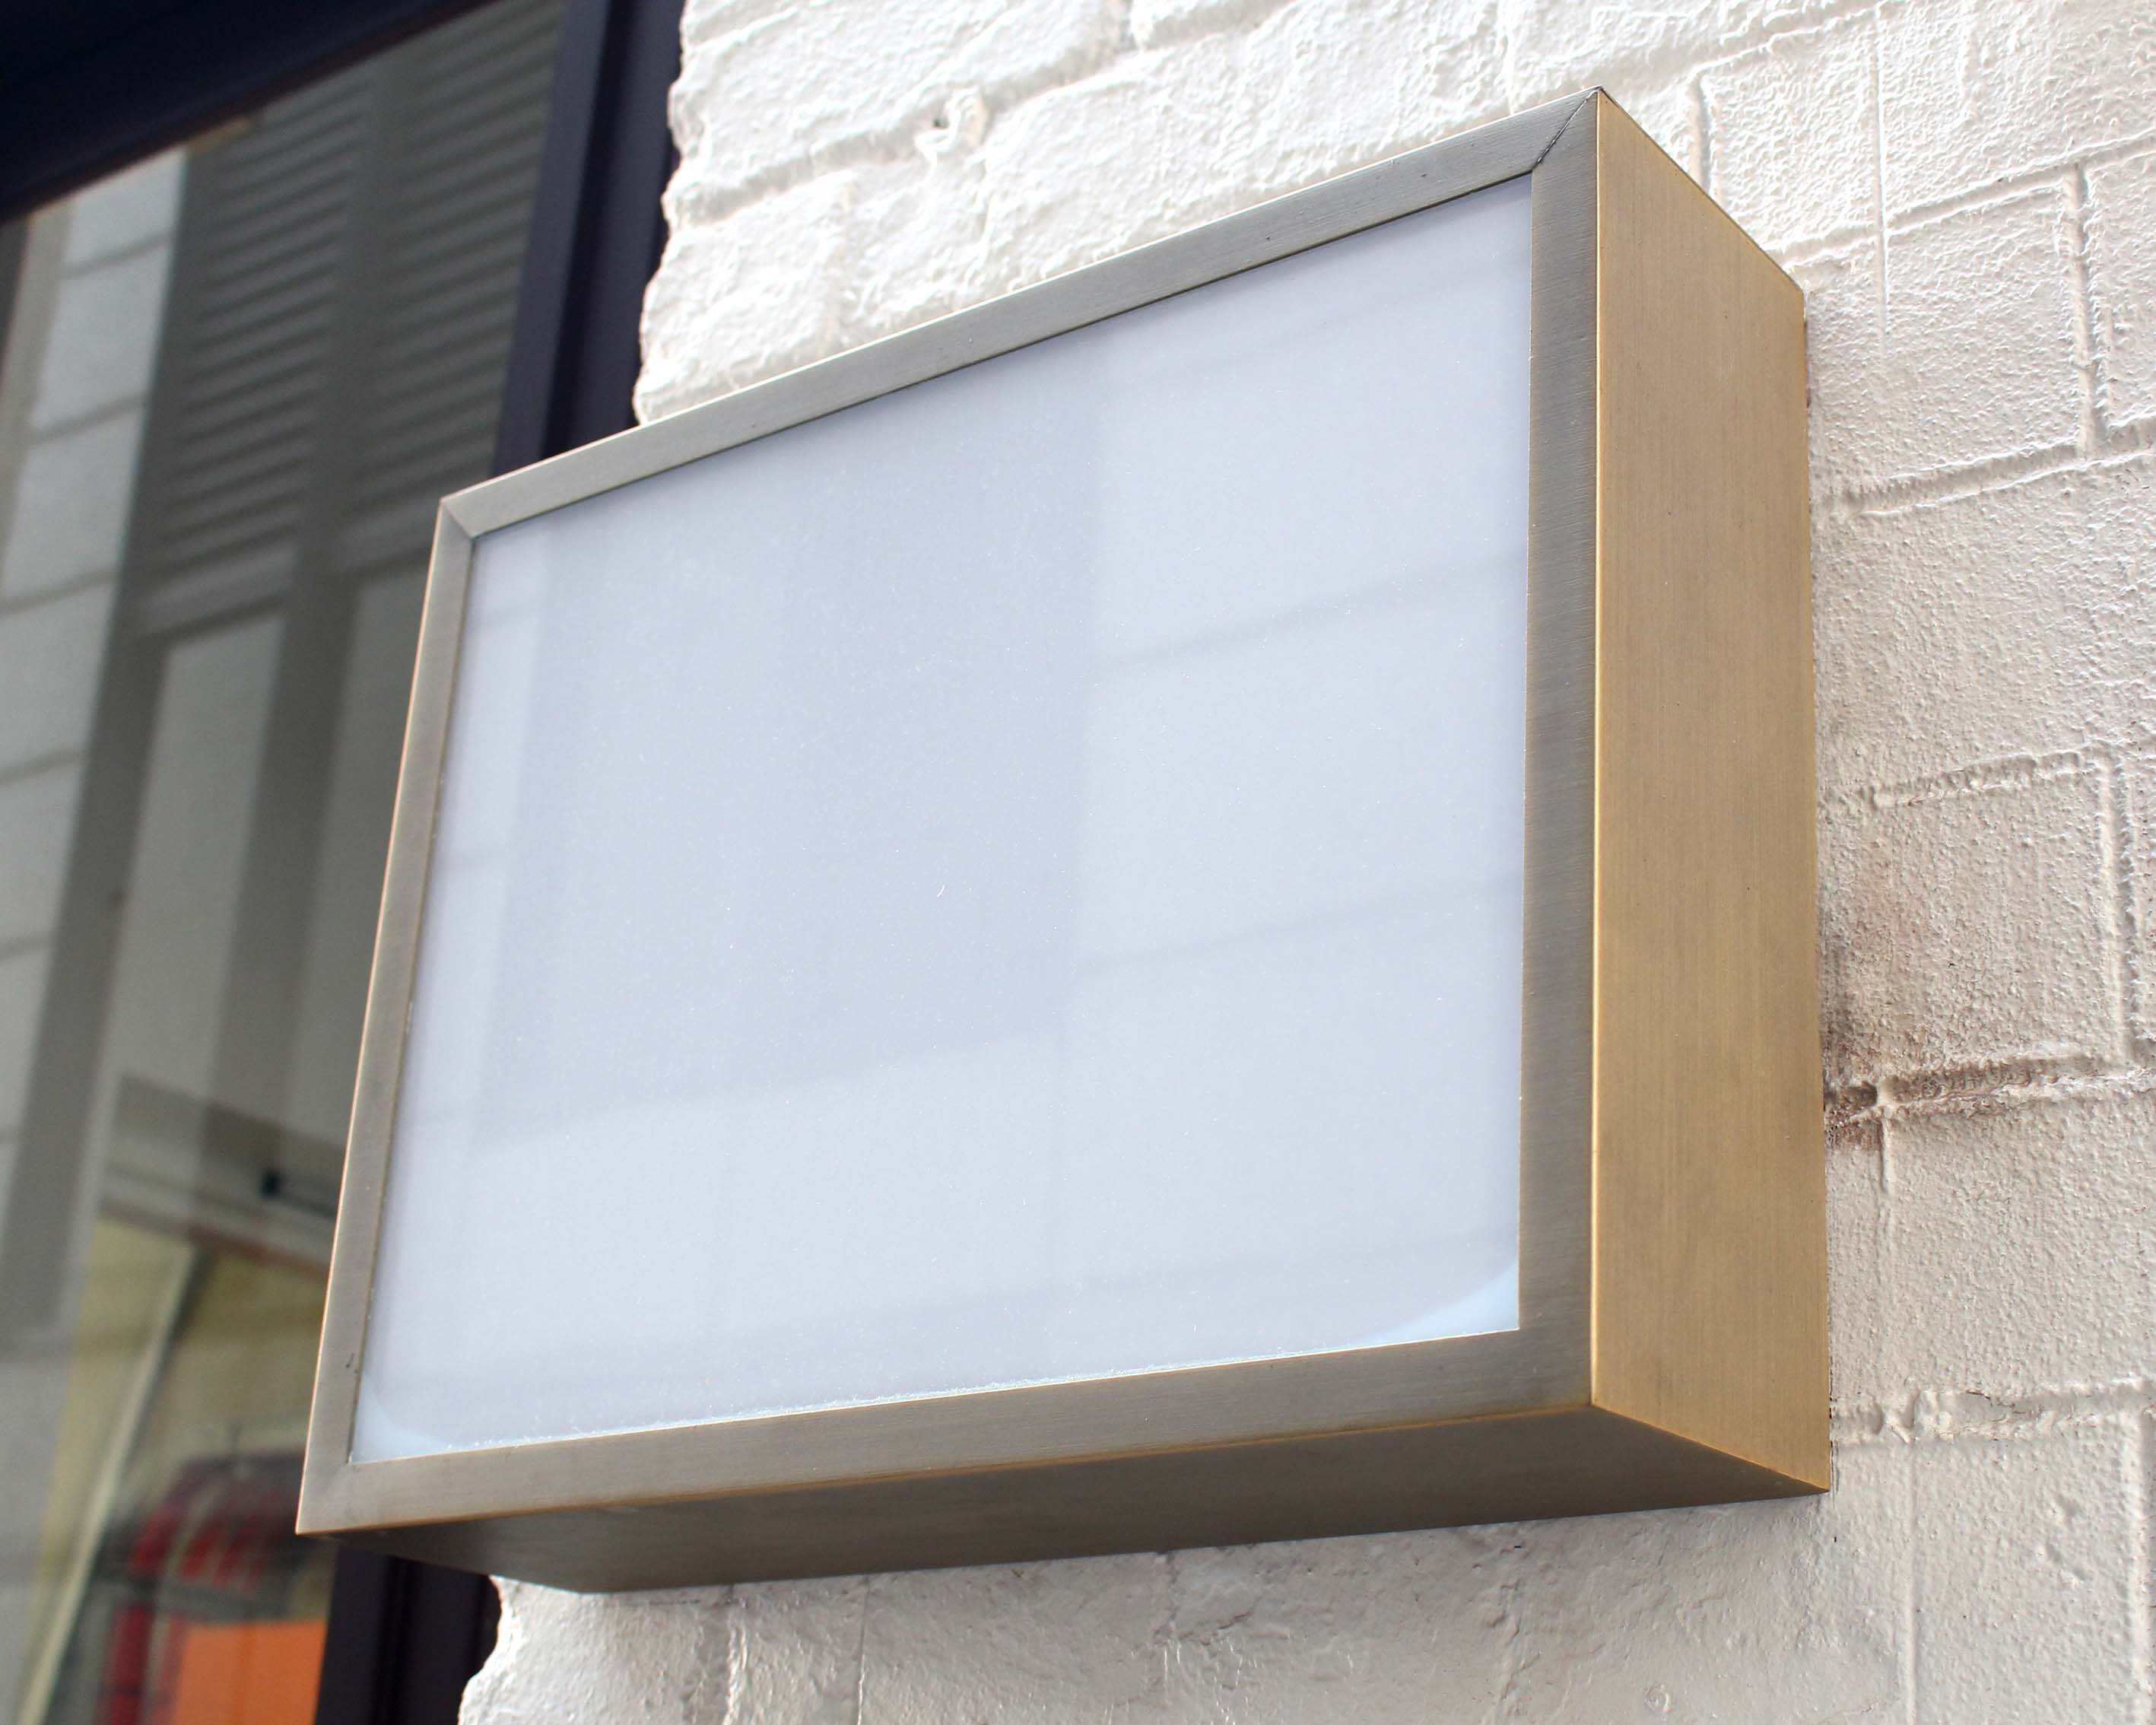 An external signage illuminated lightbox with a stainless steel frame attached to a wall.